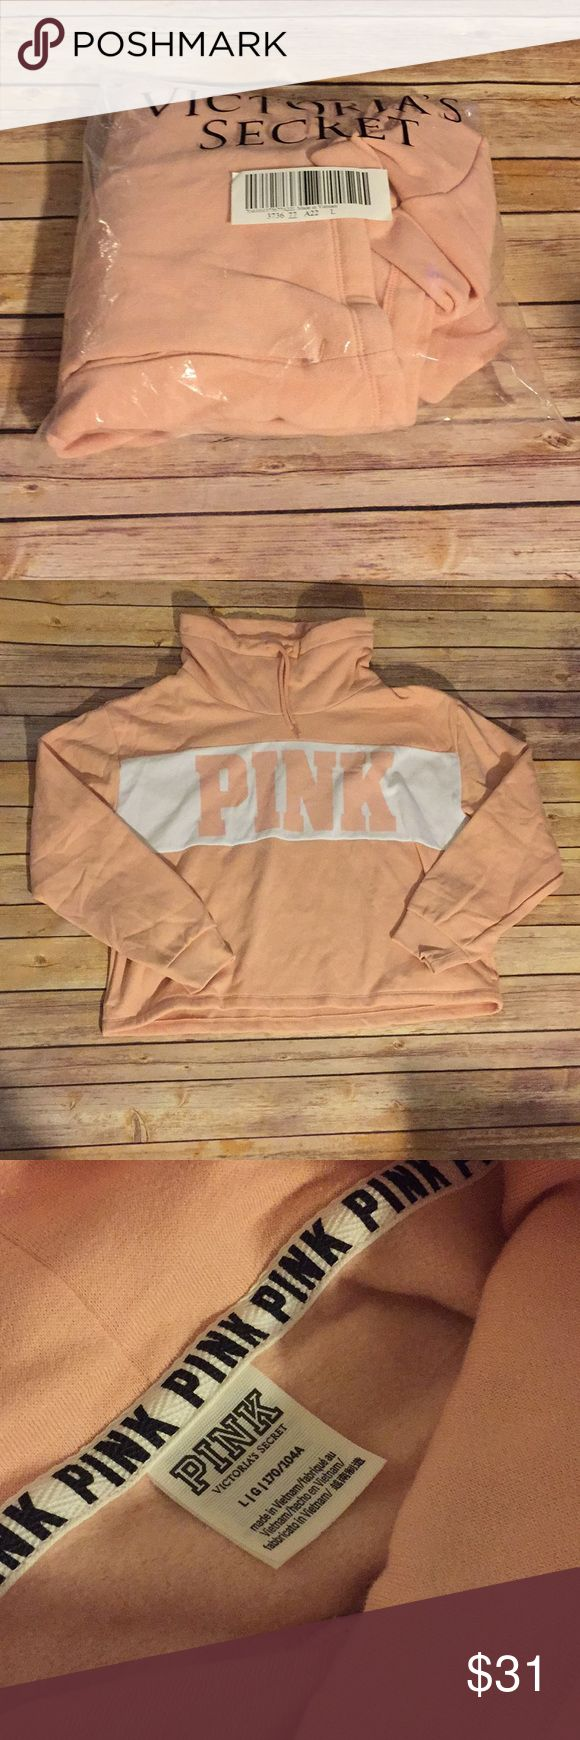 NWT Victoria's Secret PINK Mock Cowl Neck Pullover Brand new. Only removed from packaging for photos and then replaced. Actual tags were not attached because it was ordered online. No longer available online or in store.  👜Submit a bundle for a private offer! 👜.       🚫Smoke free, pet free home. No trades. 🚫 PINK Victoria's Secret Tops Sweatshirts & Hoodies